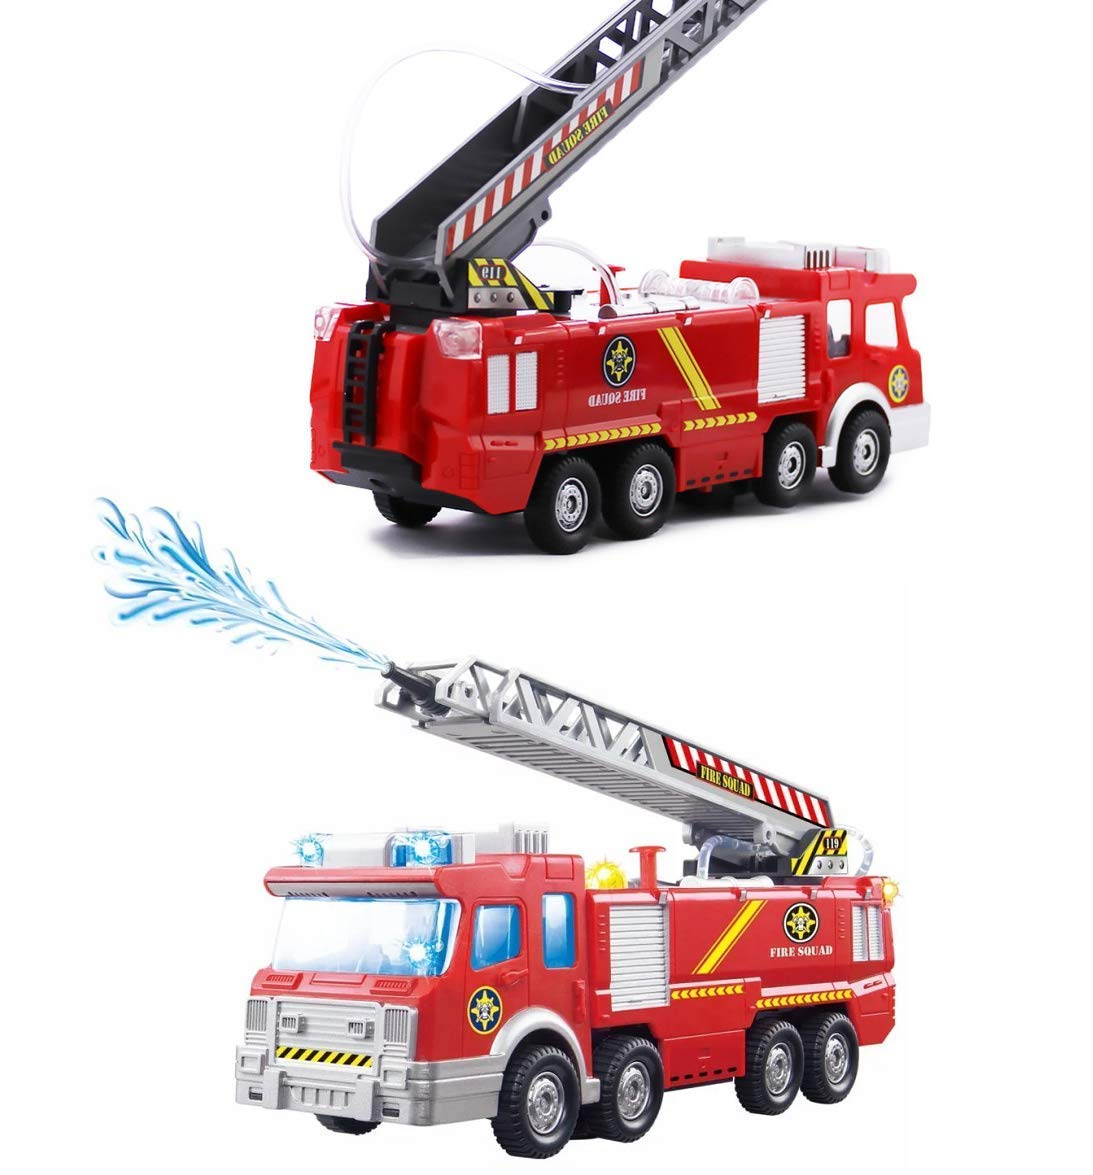 Electric Fire Truck Toy Battery Operated Electric Car Rescue Vehicle w/ Manual Water Pump Extending Ladder , Flashing Lights & Sirens Sounds , Bump & Go Action Fire Truck Toy for Kids